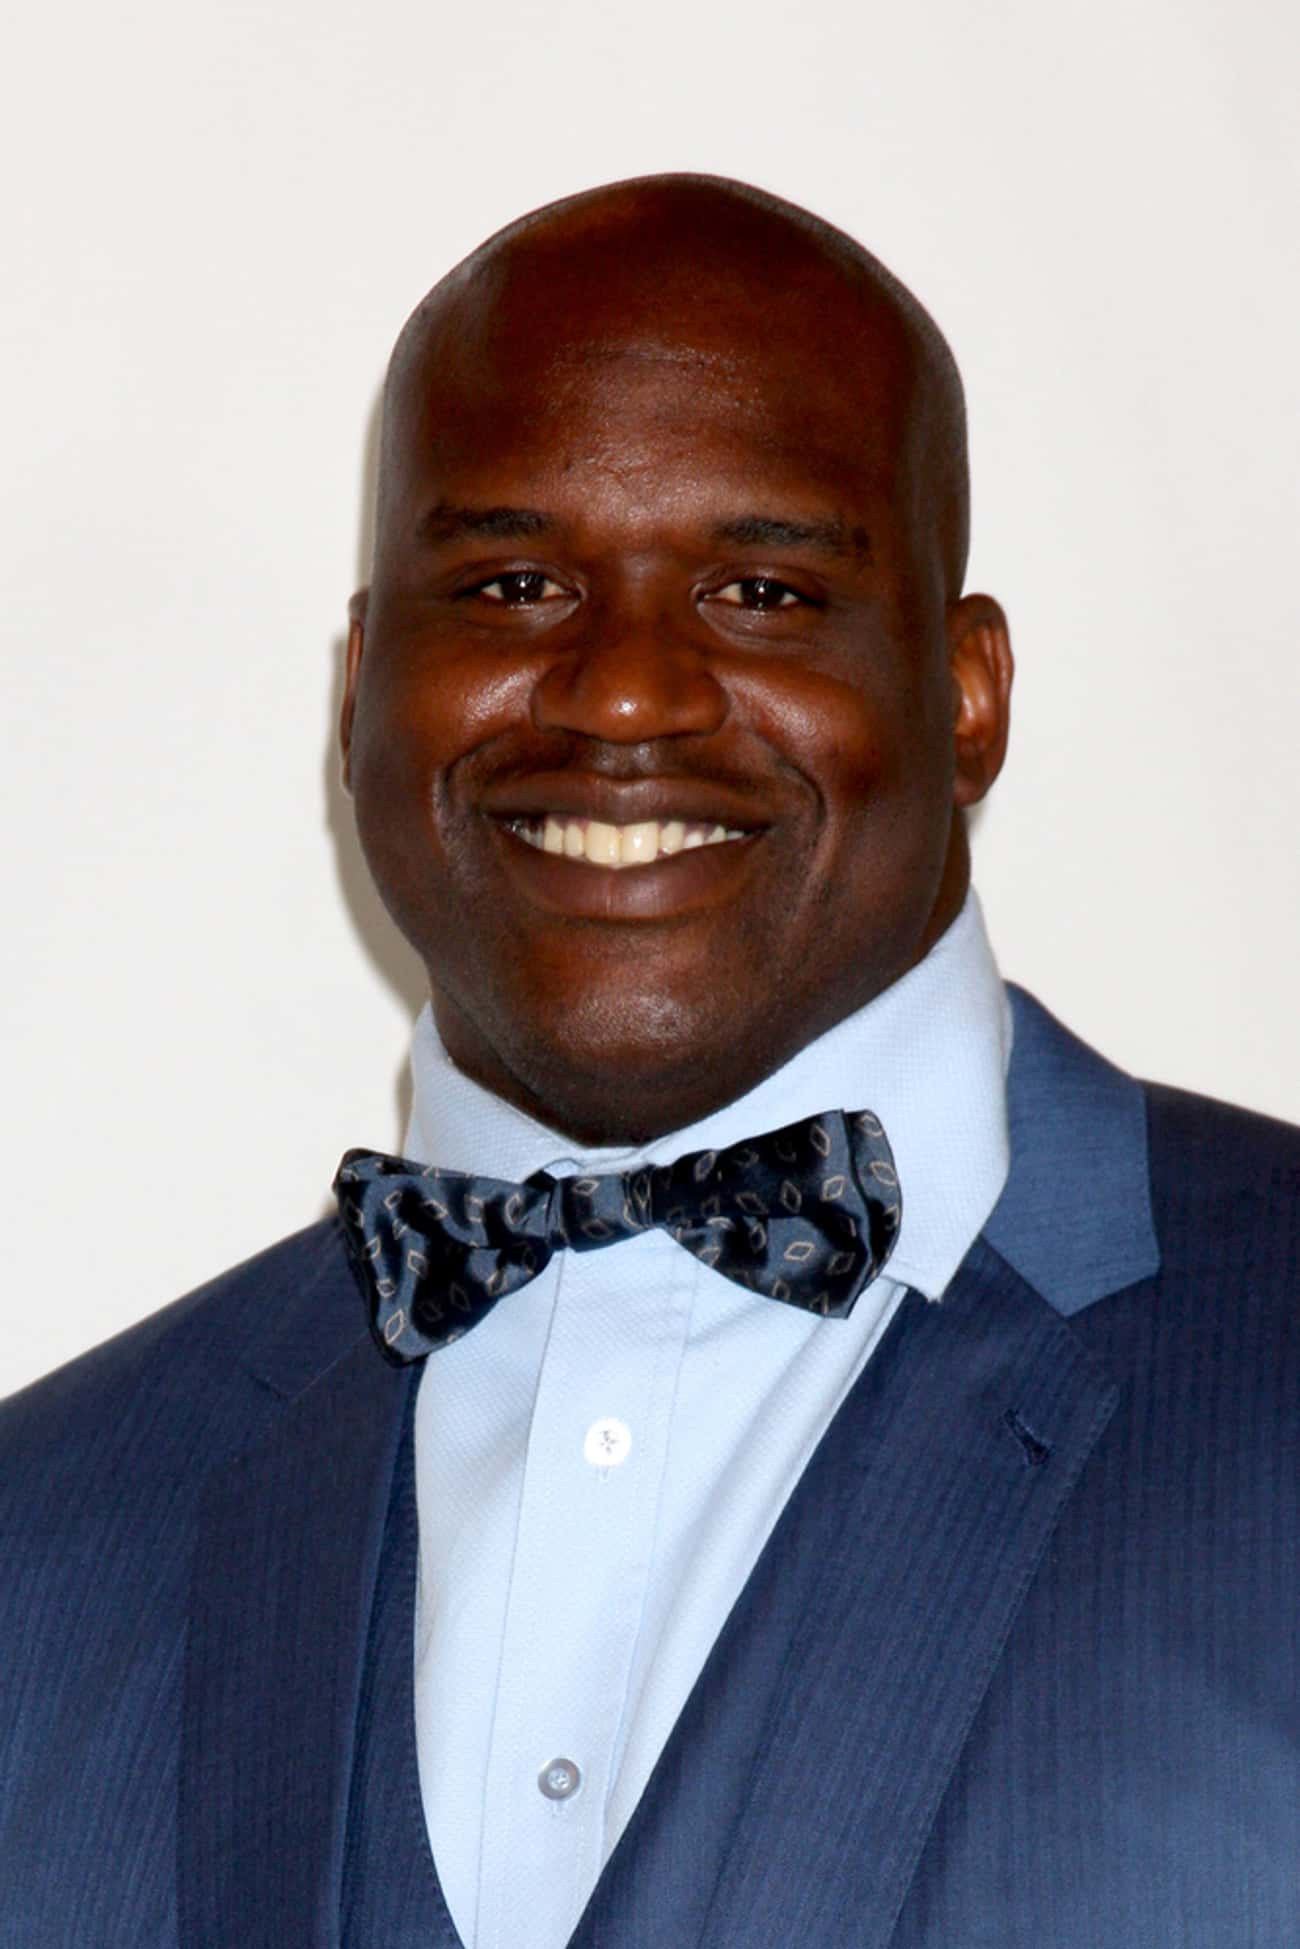 Shaquille O'Neal is listed (or ranked) 3 on the list Famous People With Arthritis